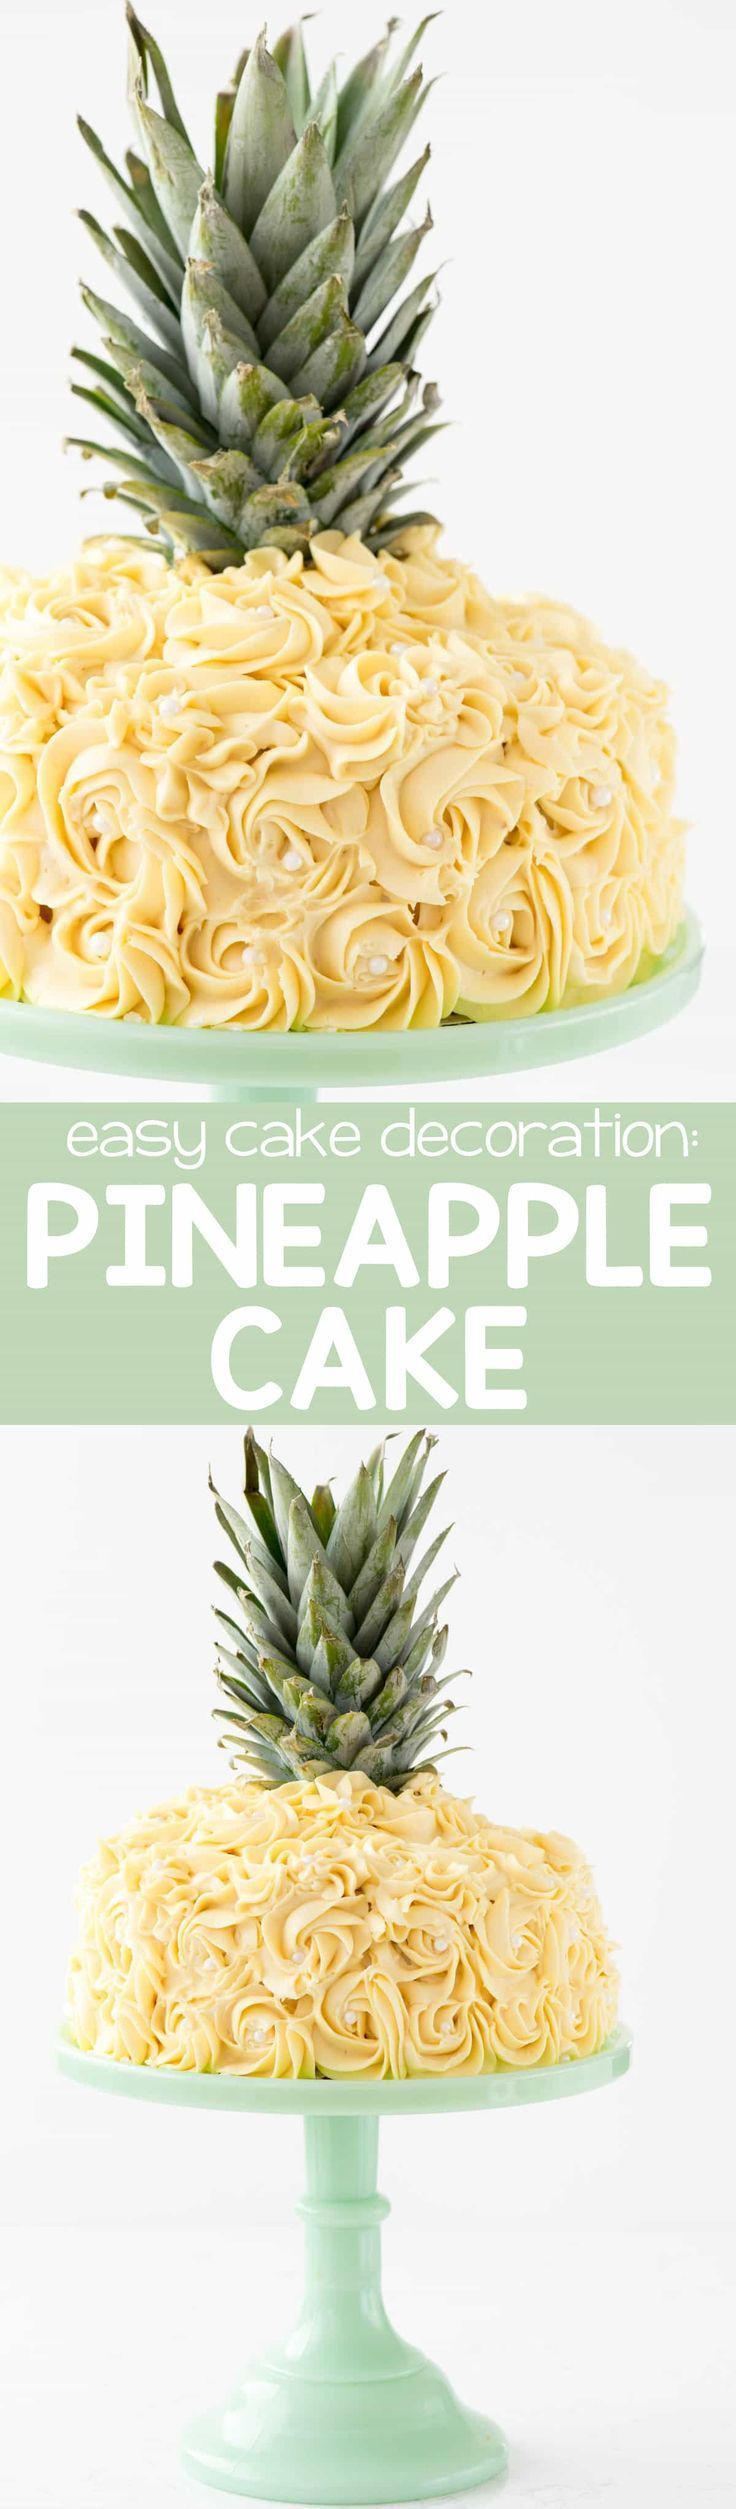 Cake - this is the EASY way to make a pineapple cake for a pineapple party! Simply frost a 2-layer cake with yellow rosette swirls and you have a pineapple cake EASILY!Pineapple Cake - this is the EASY way to make a pineapple cake for a pineapple party! Simply frost a 2-layer cake with yellow rosette swirls and you have a pineapple cake EASILY!